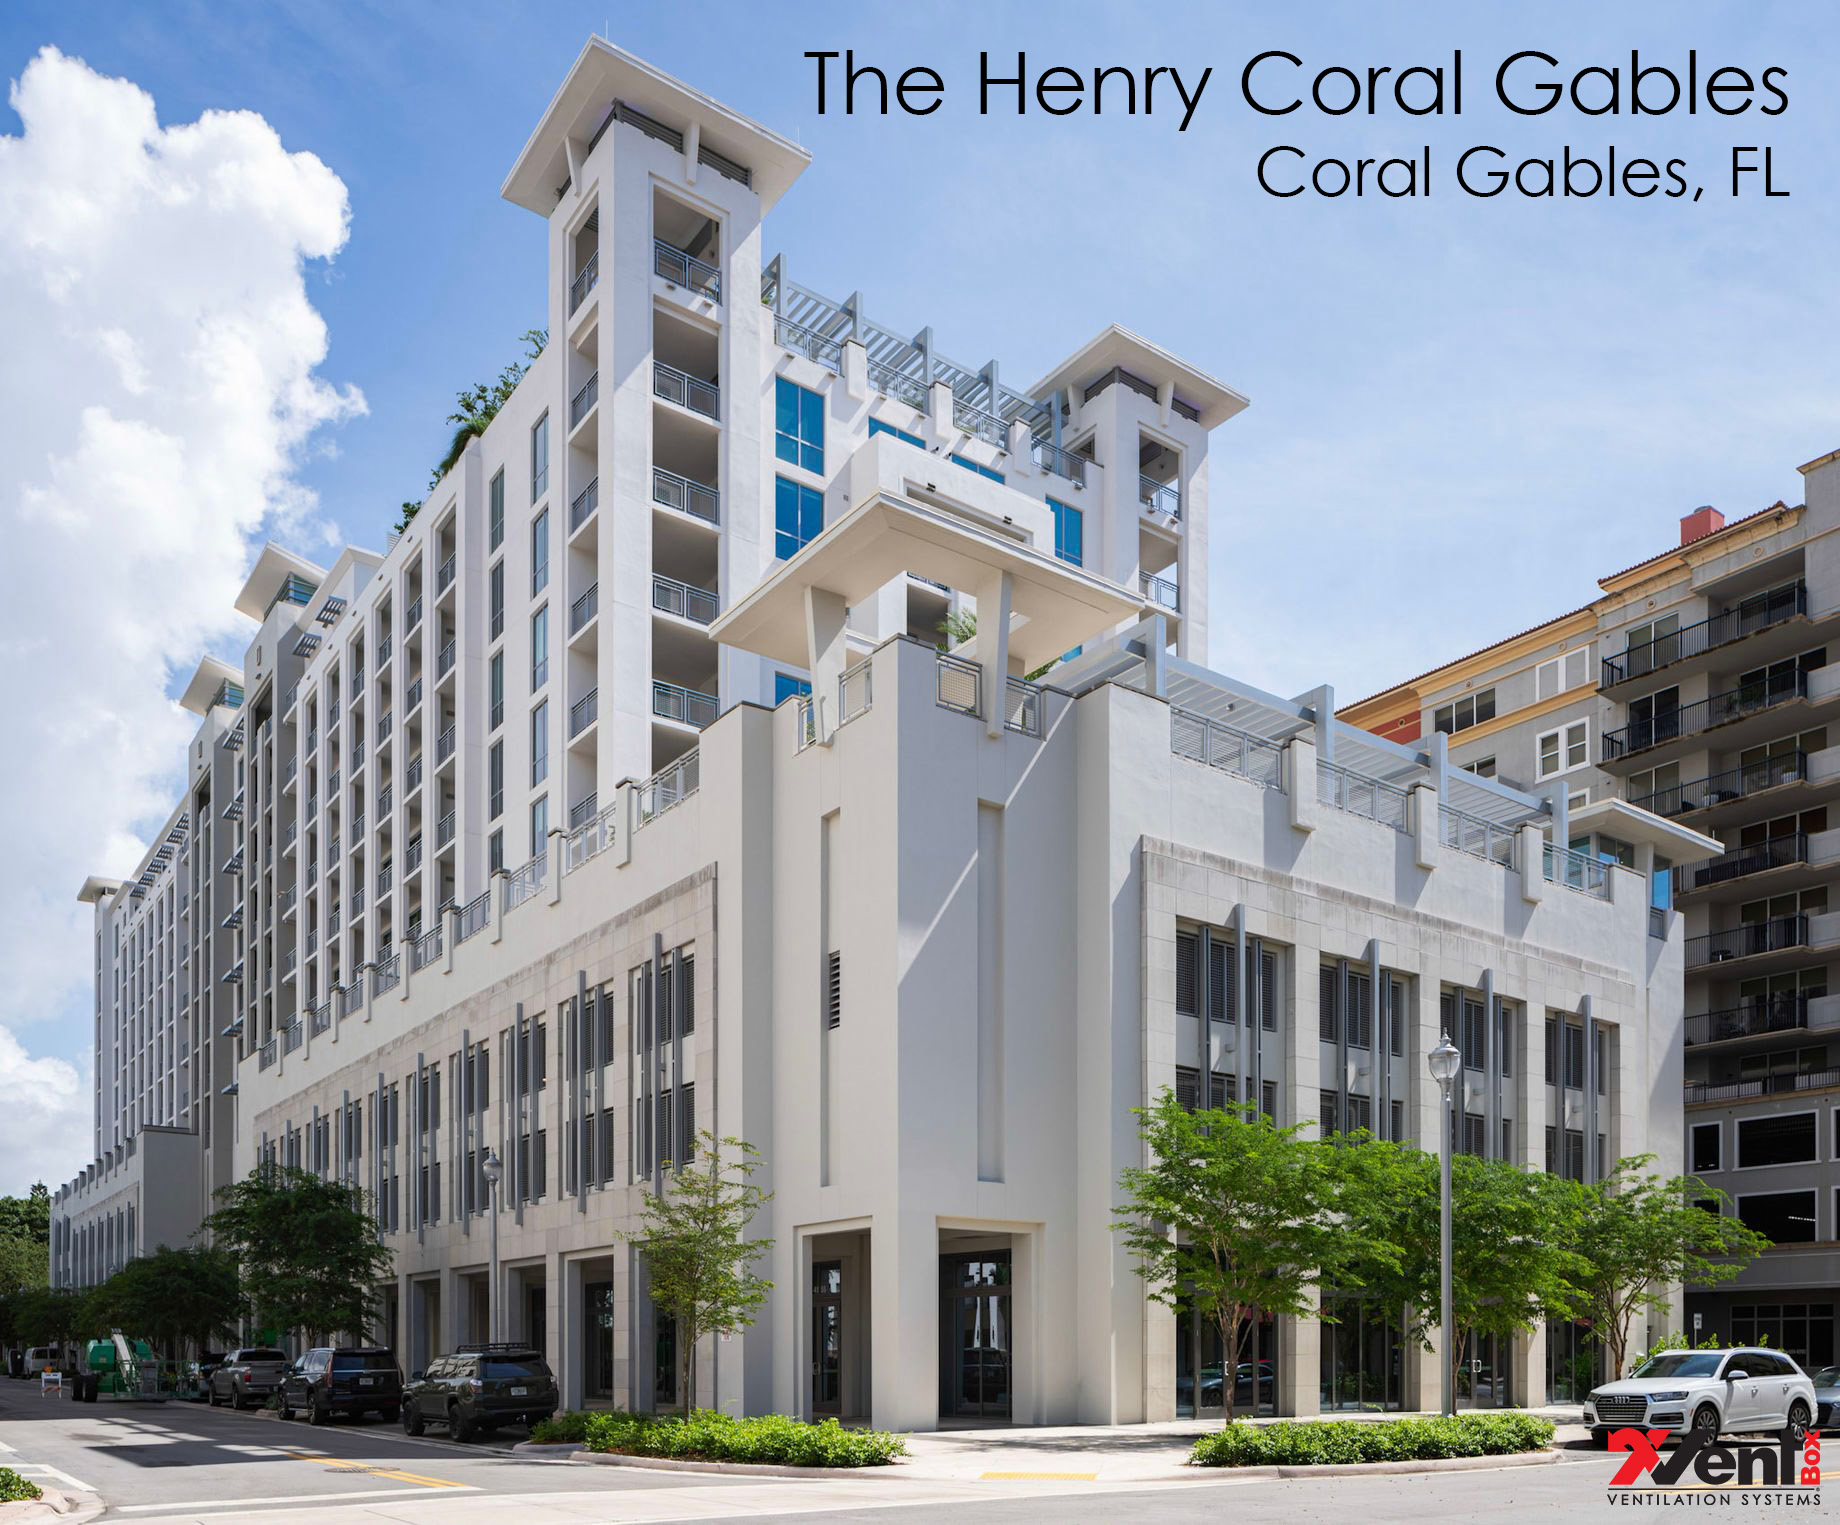 The Henry Coral Gables